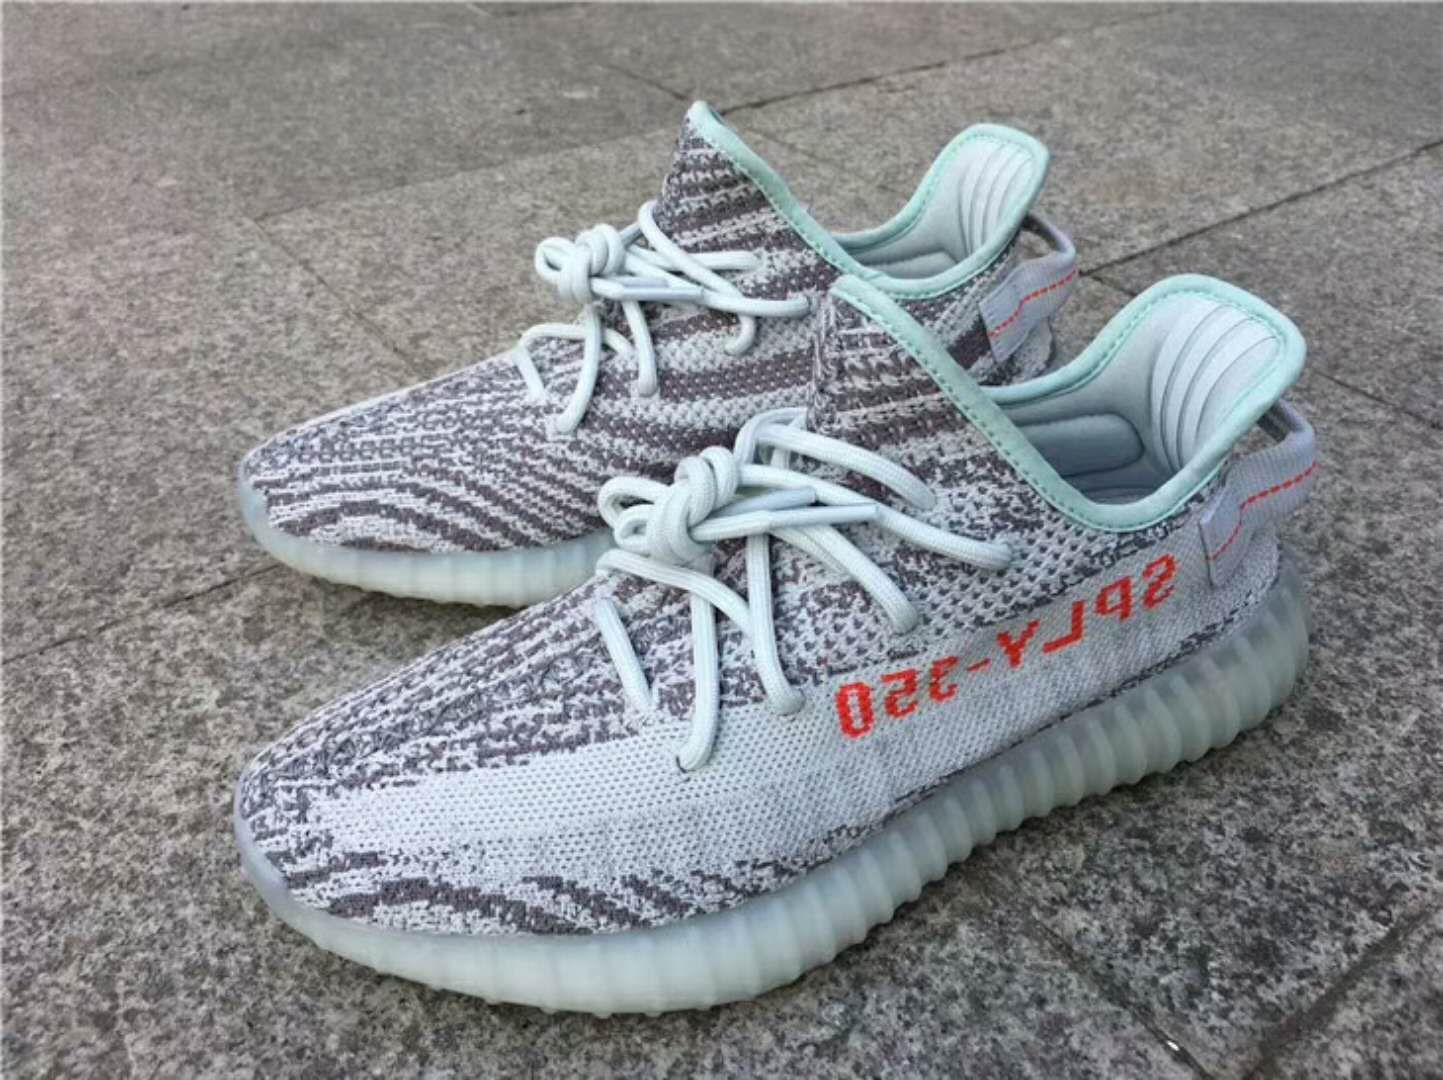 "finest selection 8b3cf 4184d Adidas Yeezy Boost 350 V2 Blue Tint"" B37571"